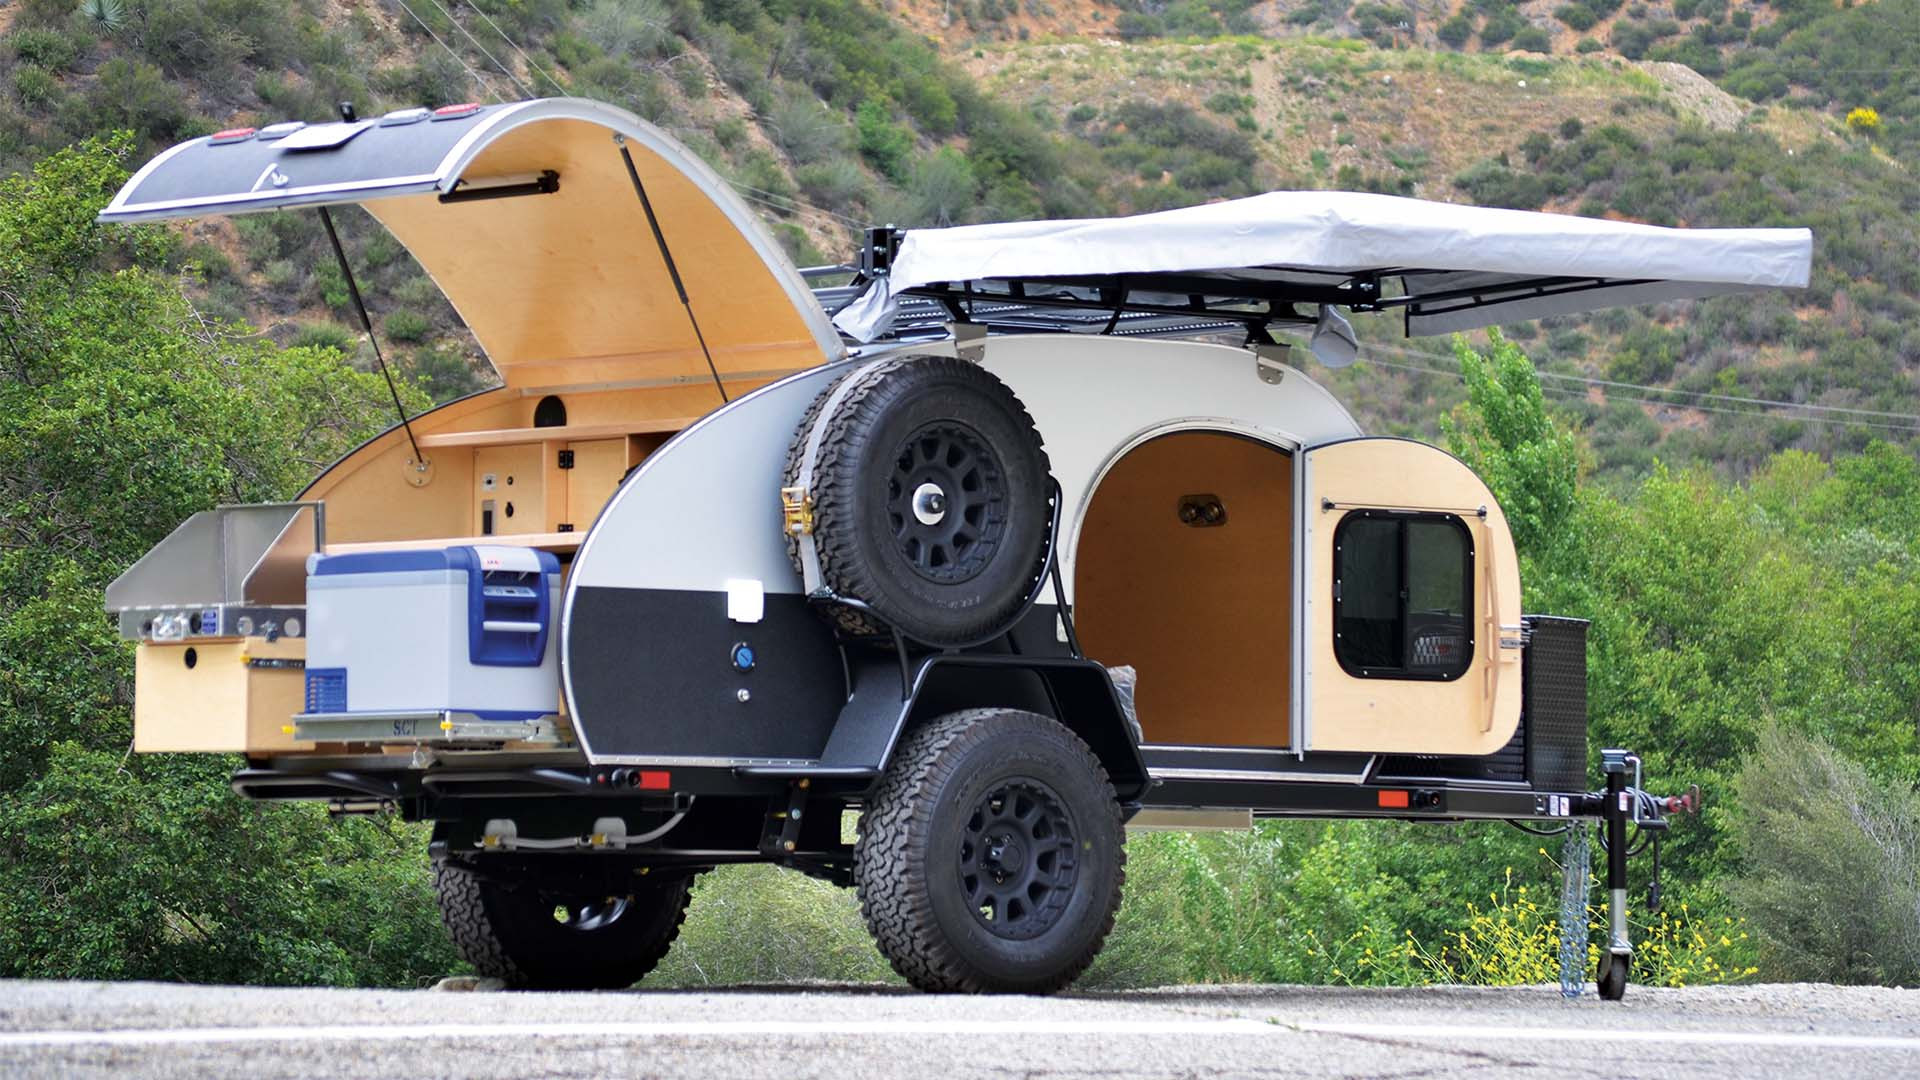 The XS two-wheeled trailer – Mobitecture